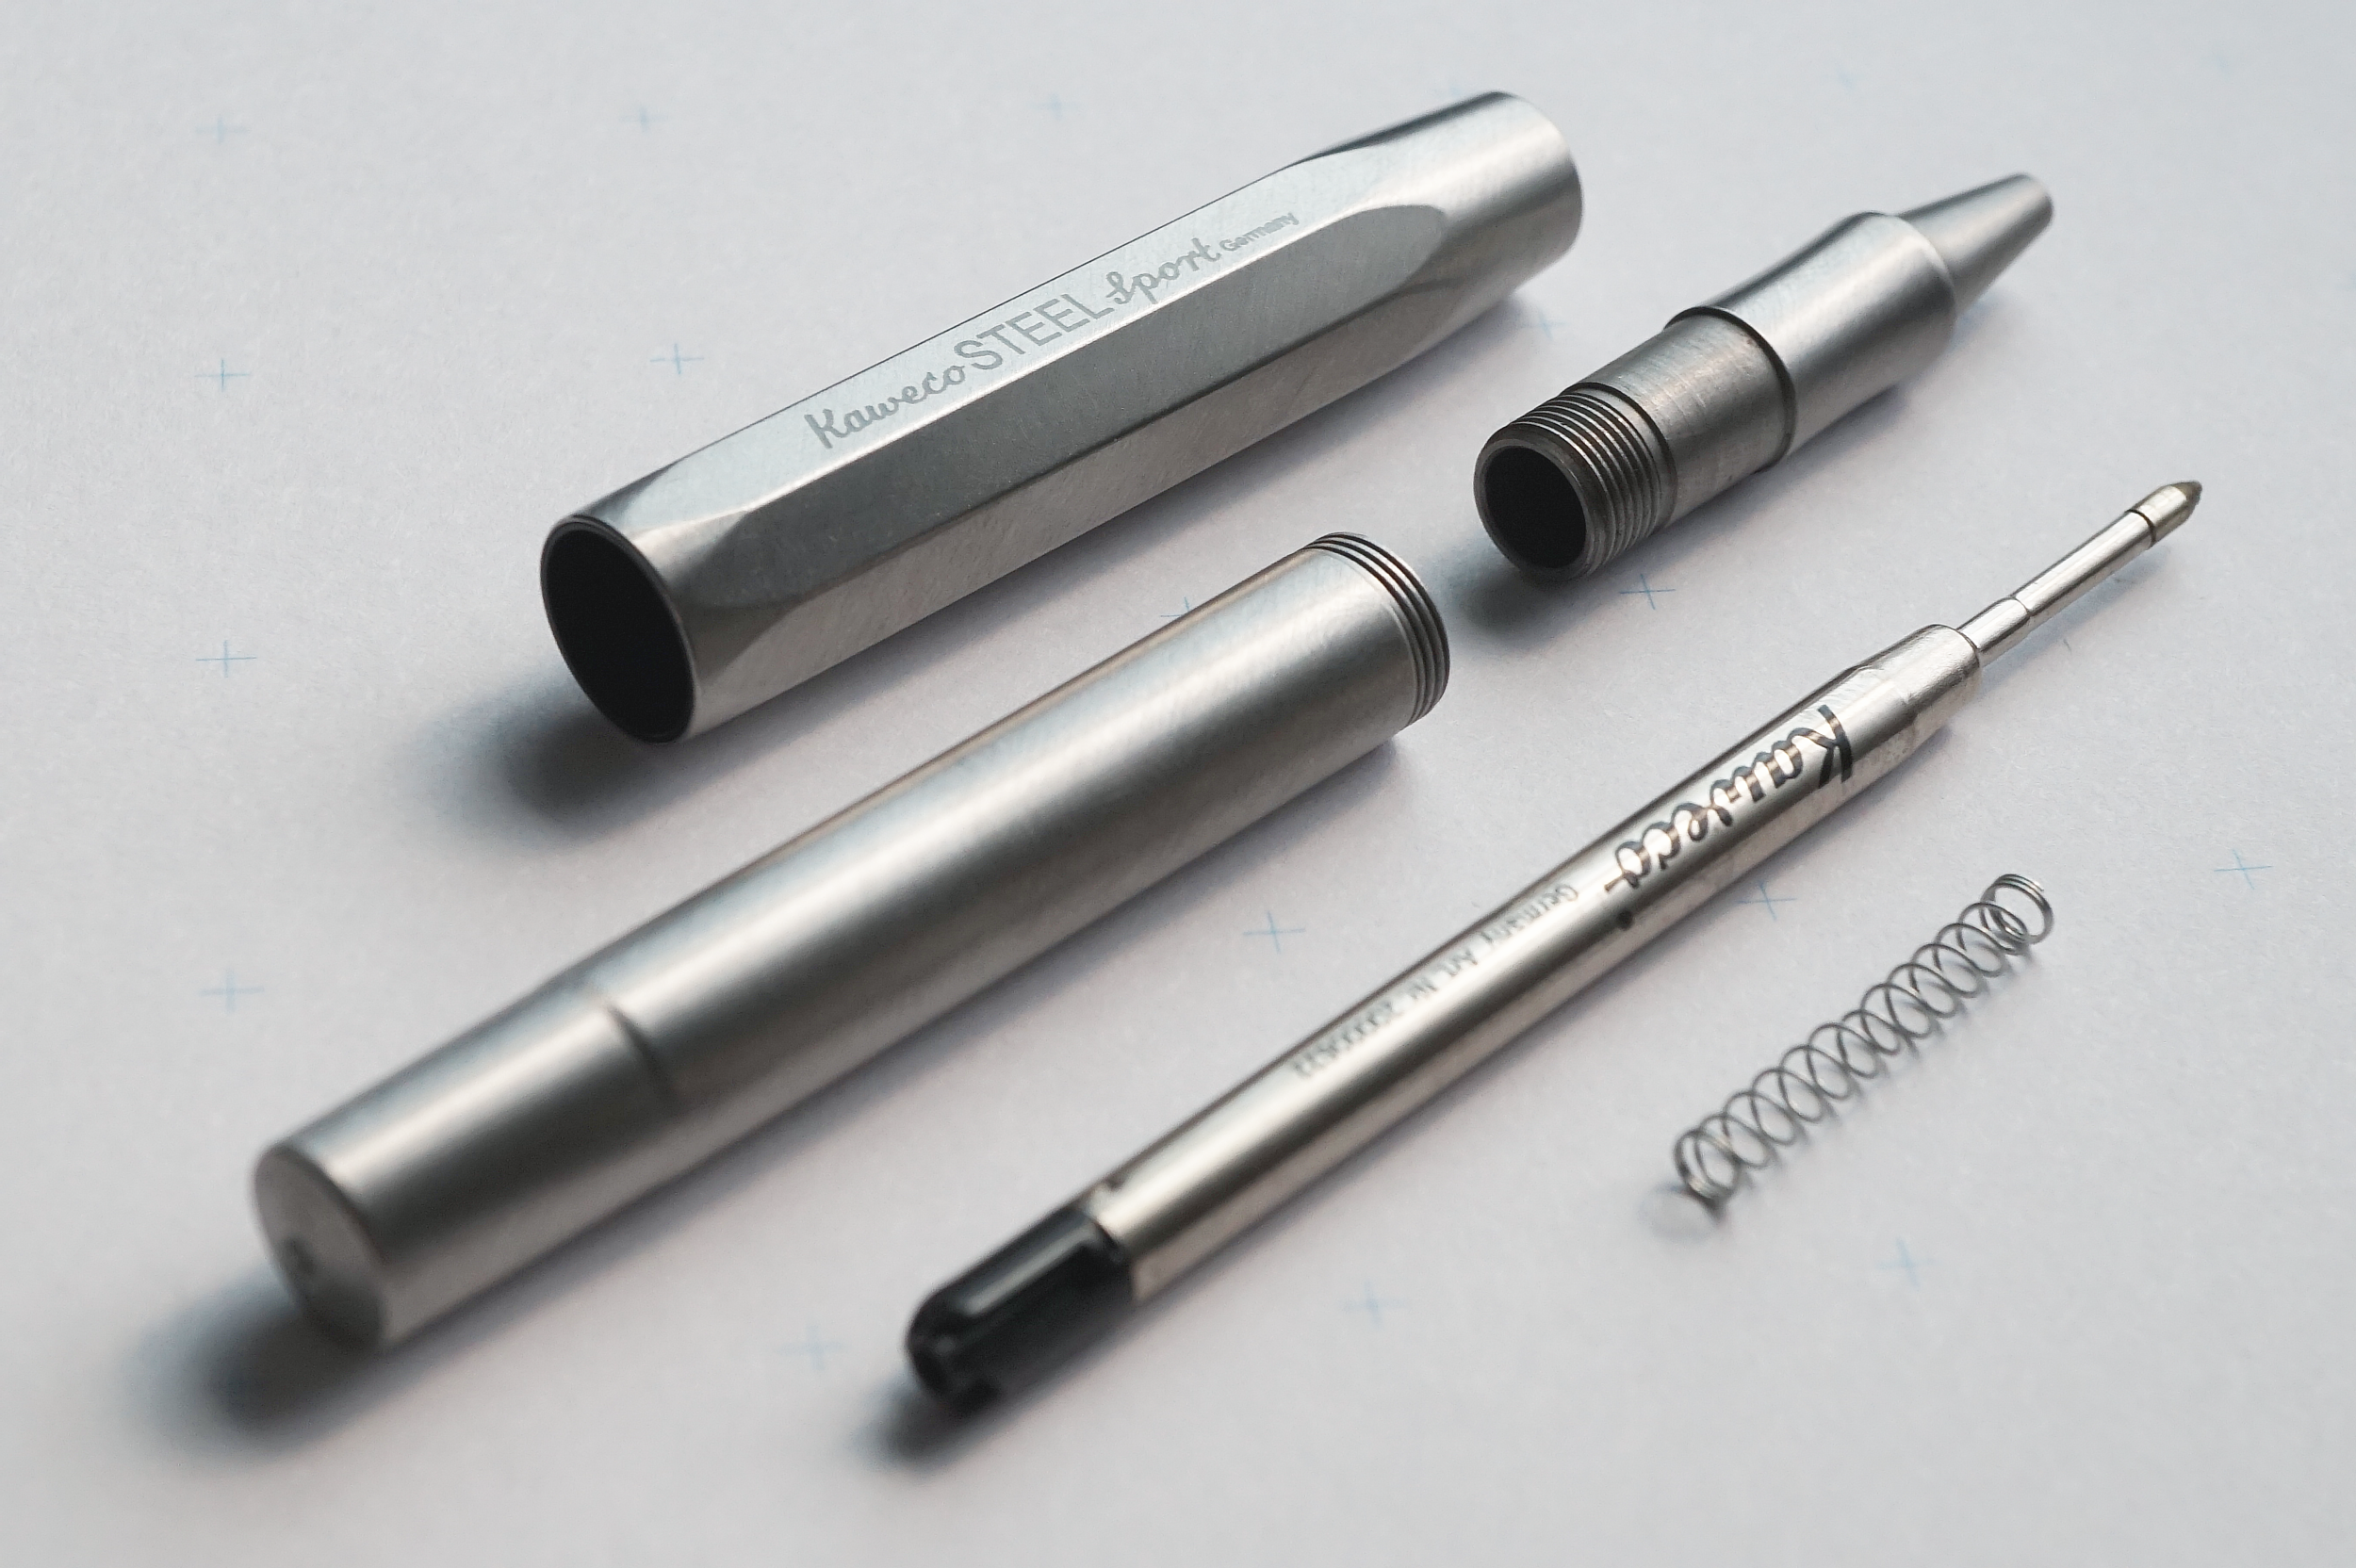 Kaweco Sports Steel Roller Ball Made of Stainless Steel #